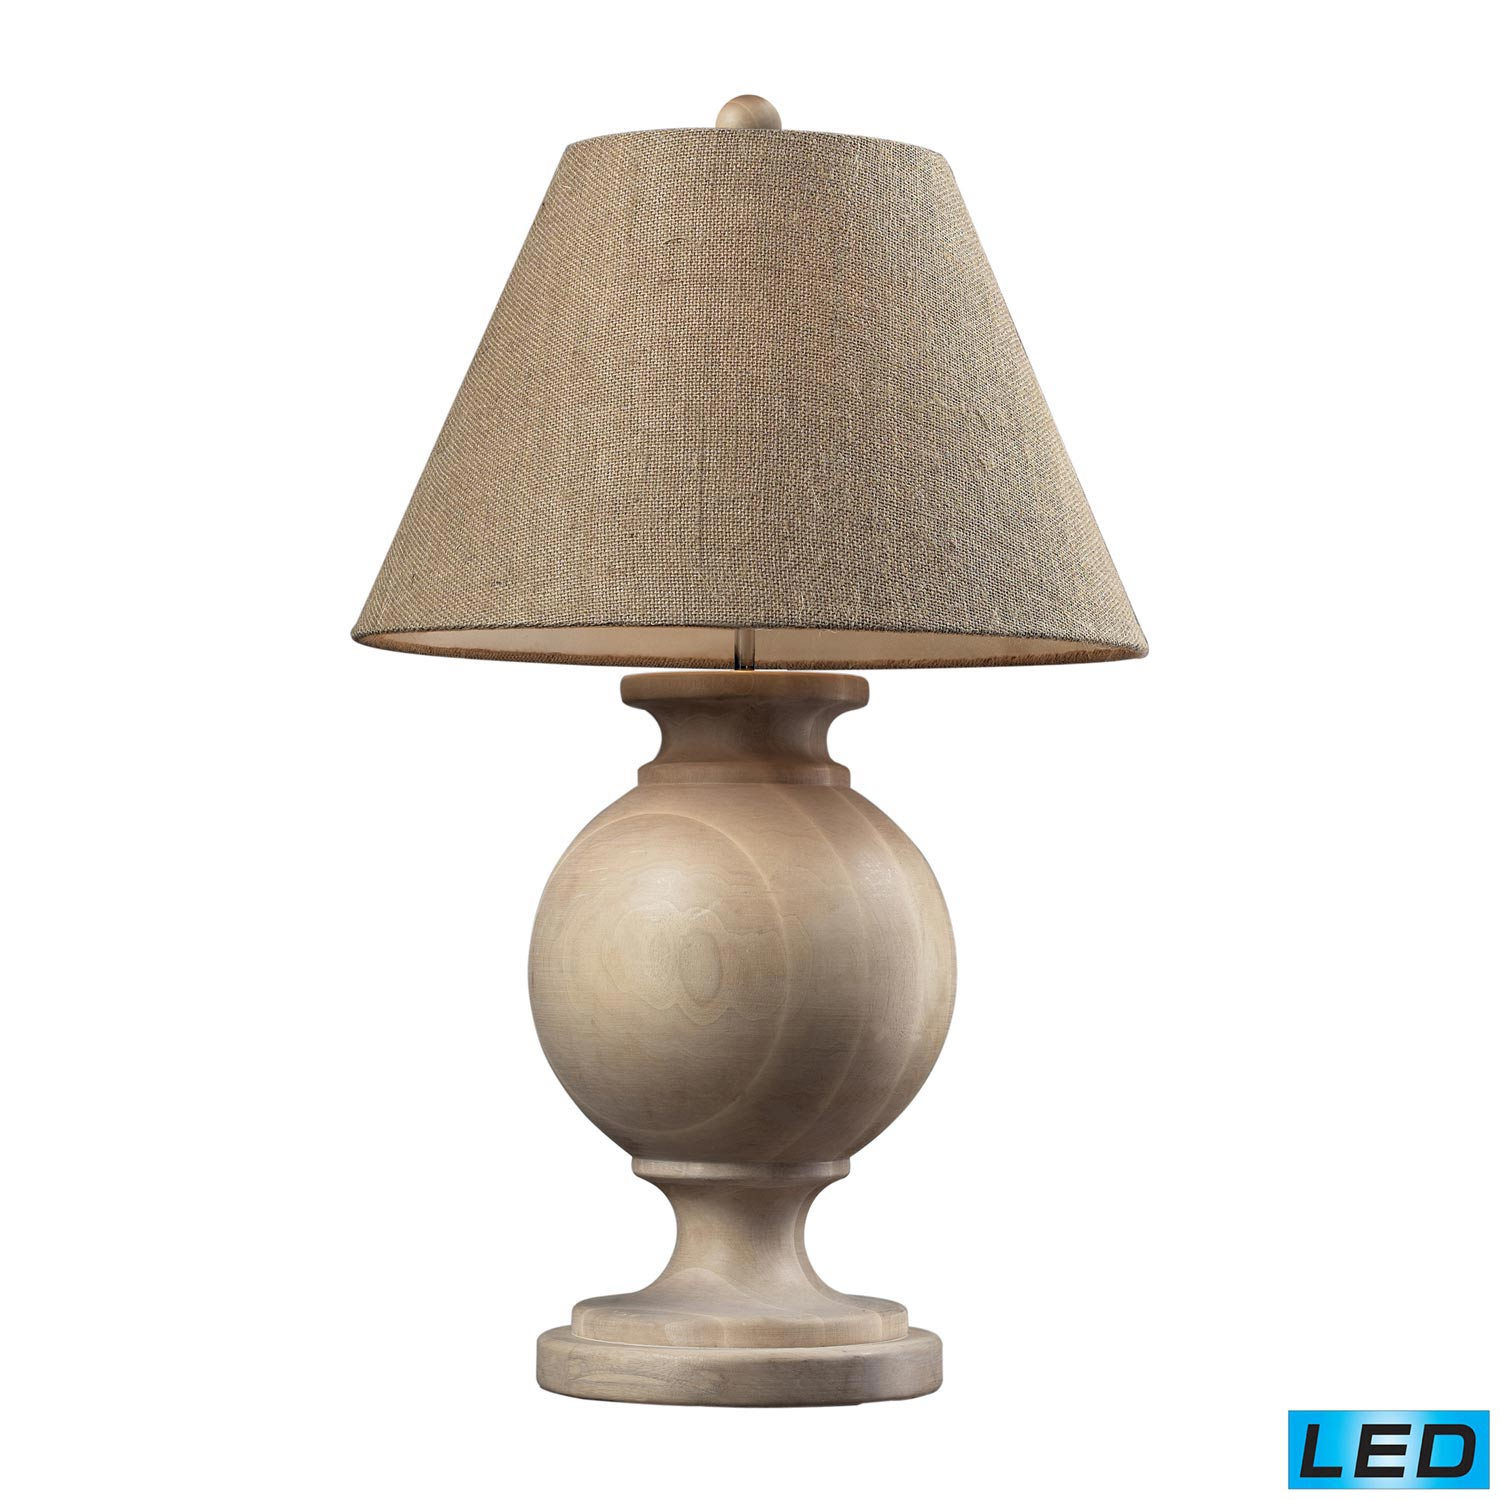 D2249 led swannanoa table lamp beech wood for Lamp table beech